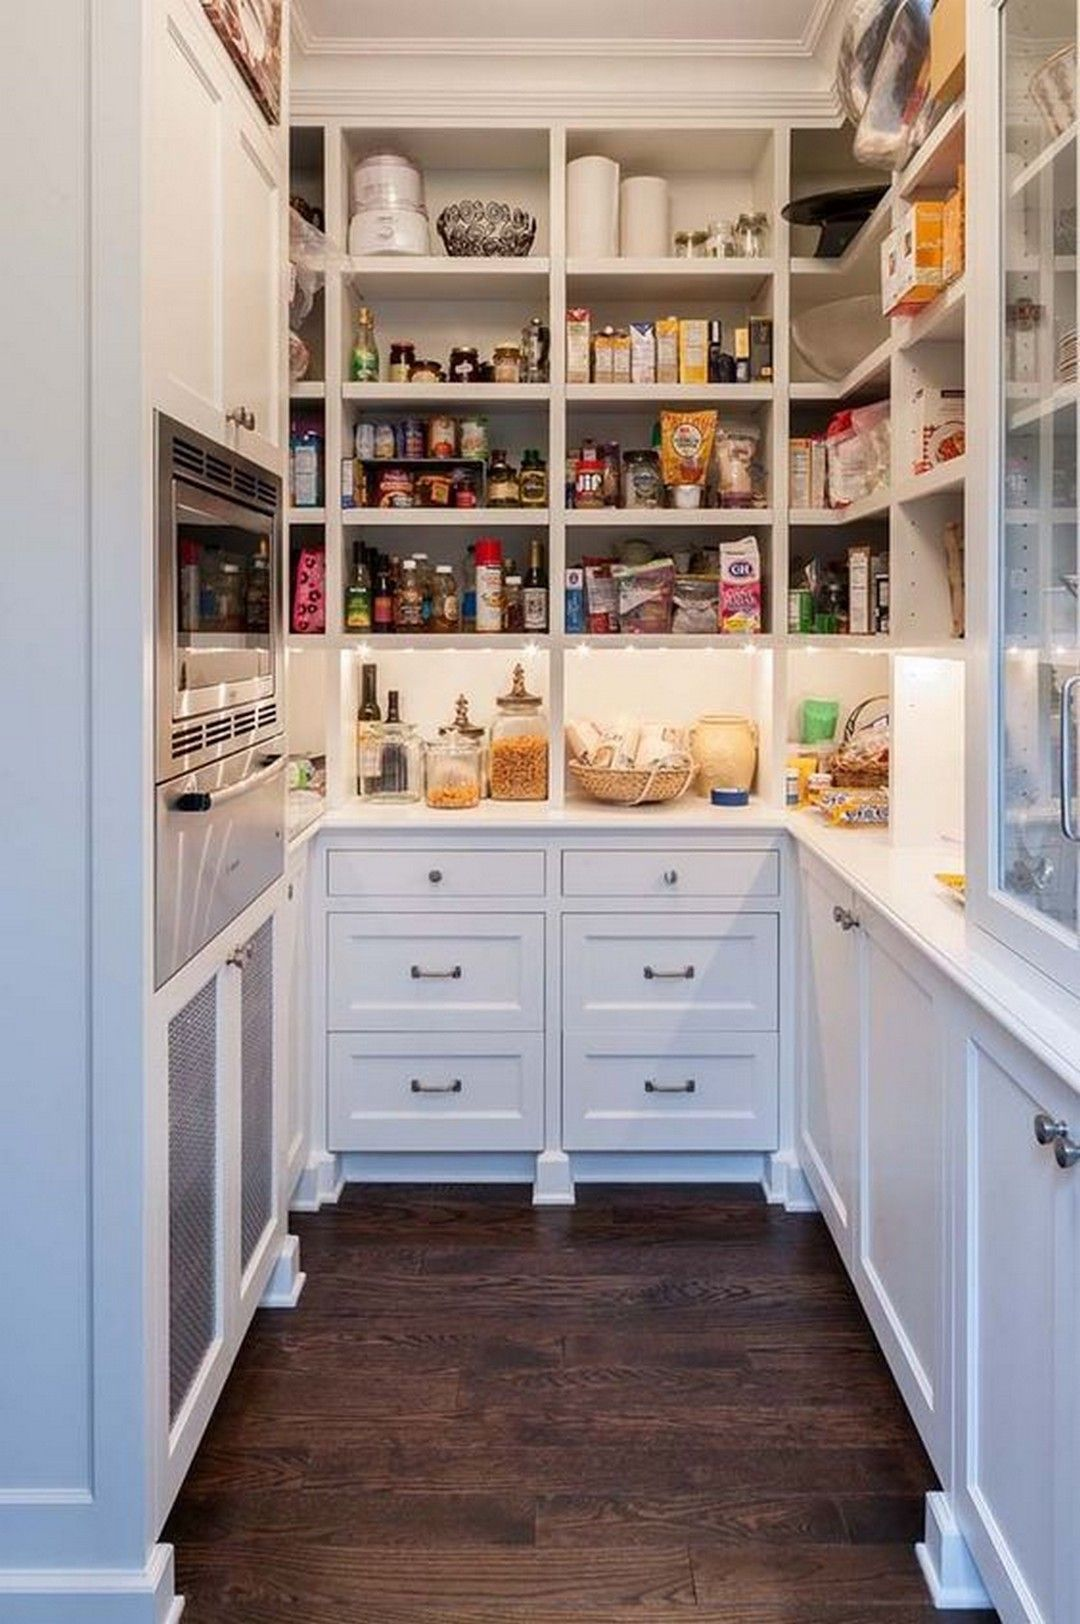 Design And Convenience Describes My Ideal Kitchen Here Are My Top